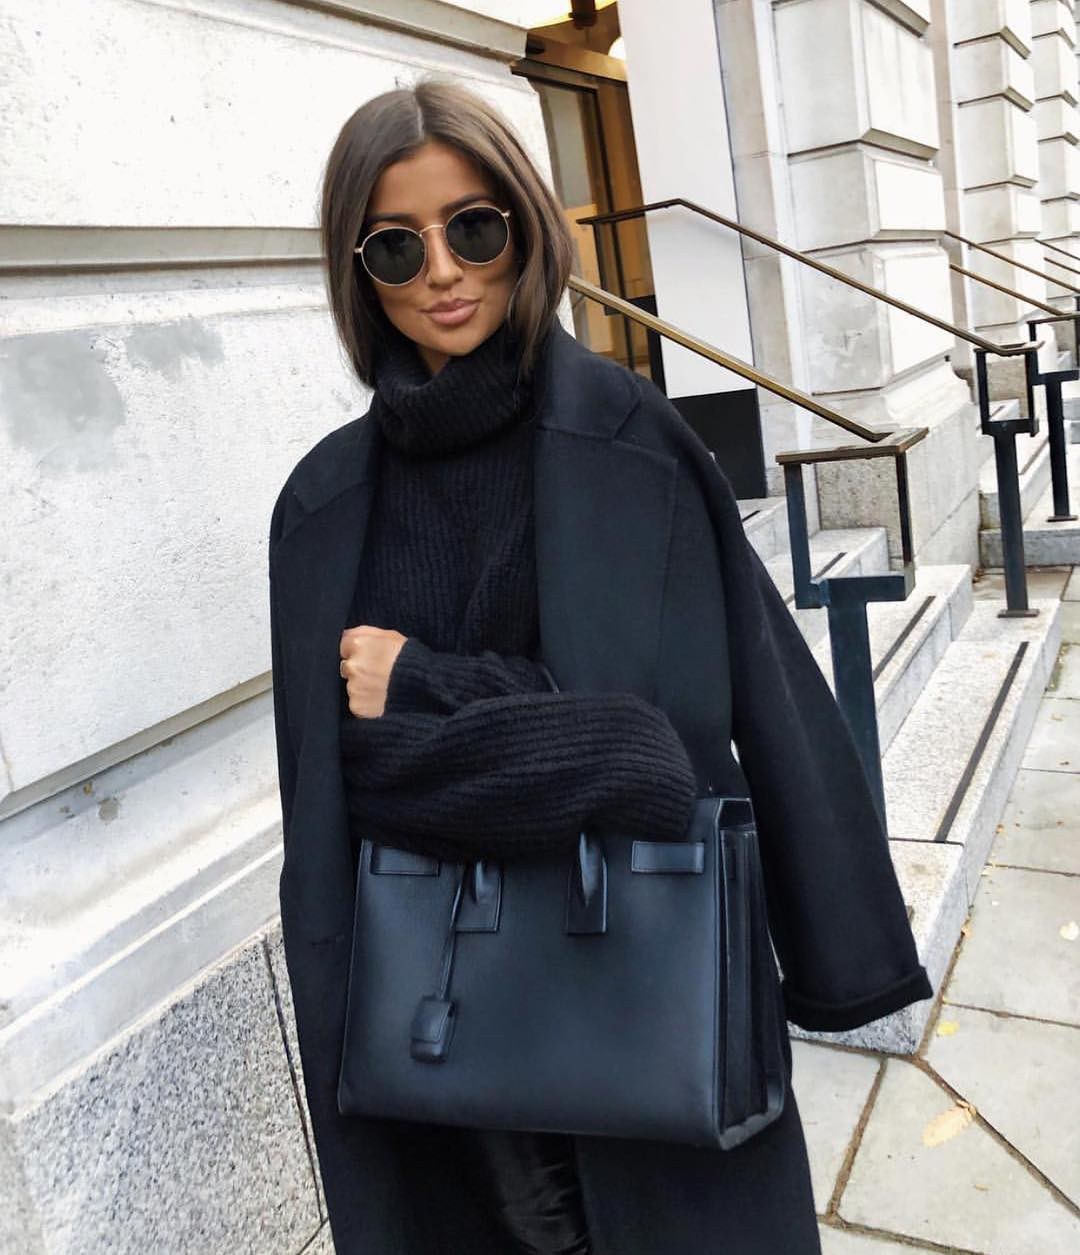 All Black Winter Look: Long Coat, Slouchy Turtleneck Sweater And Skirt 2020